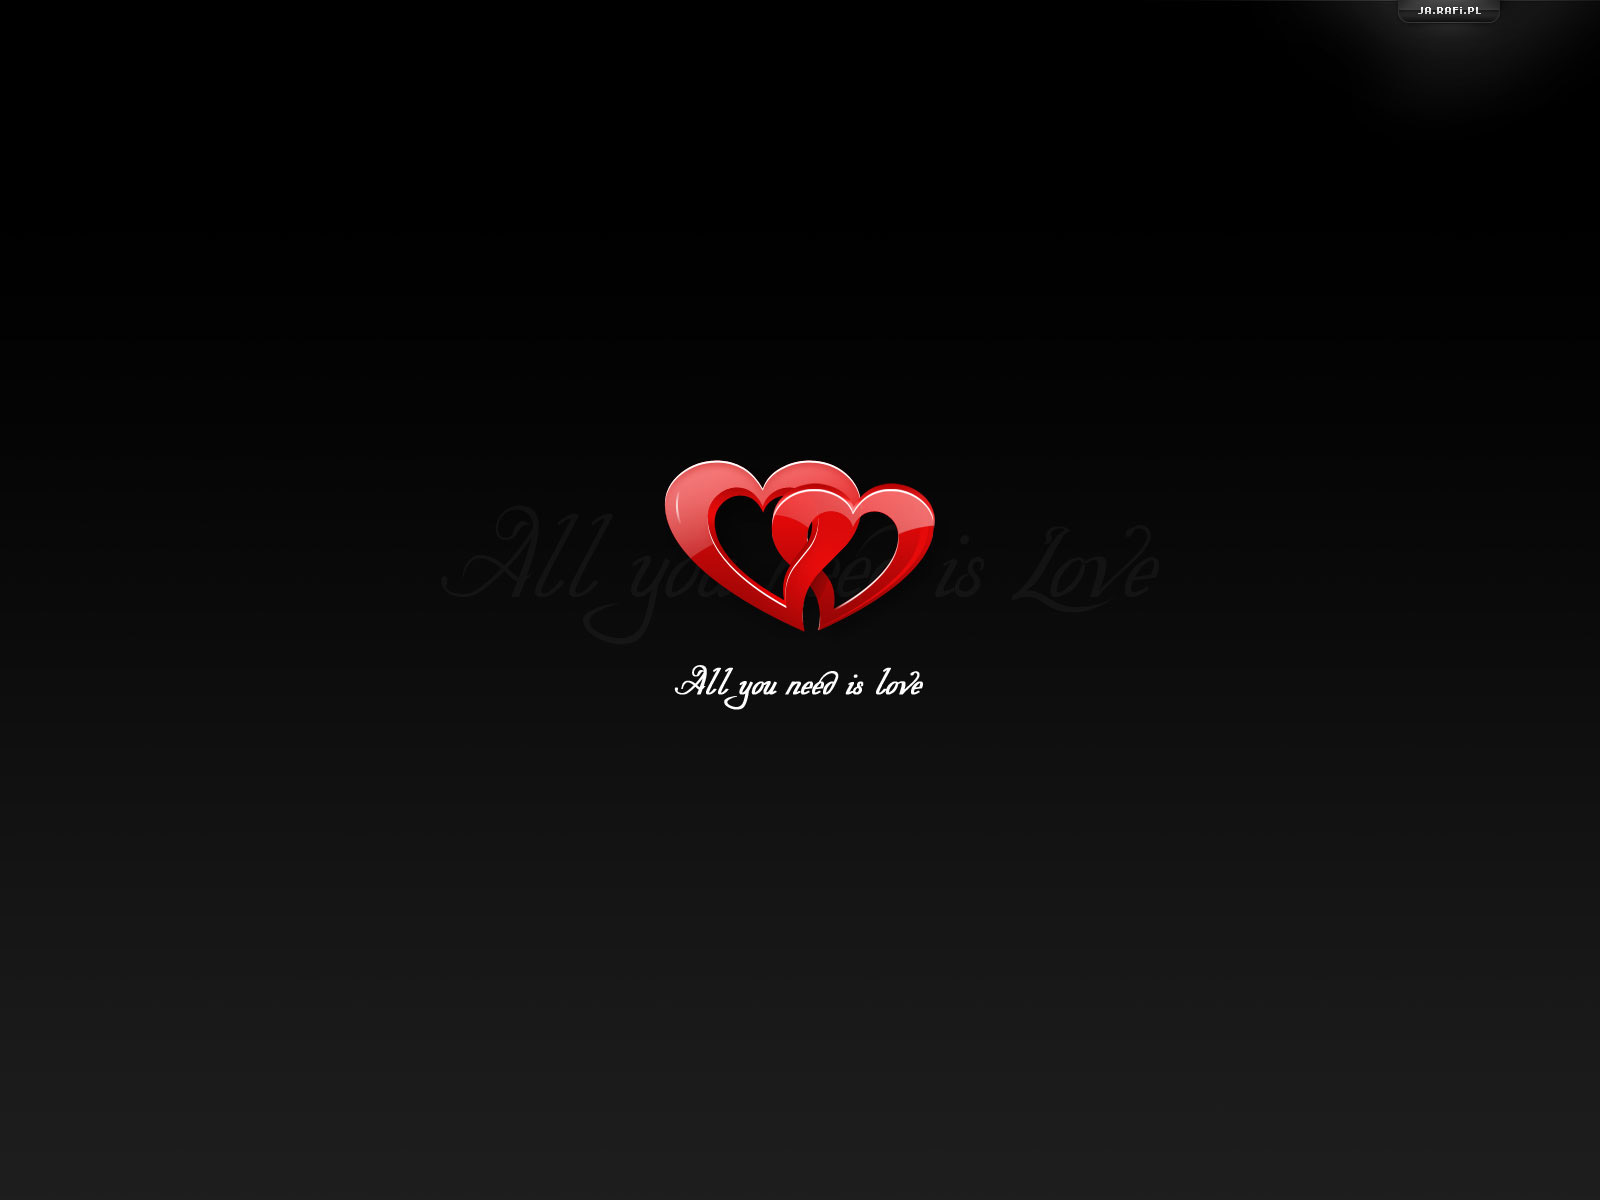 Beautifully designed Valentine's Day wallpaper x 478